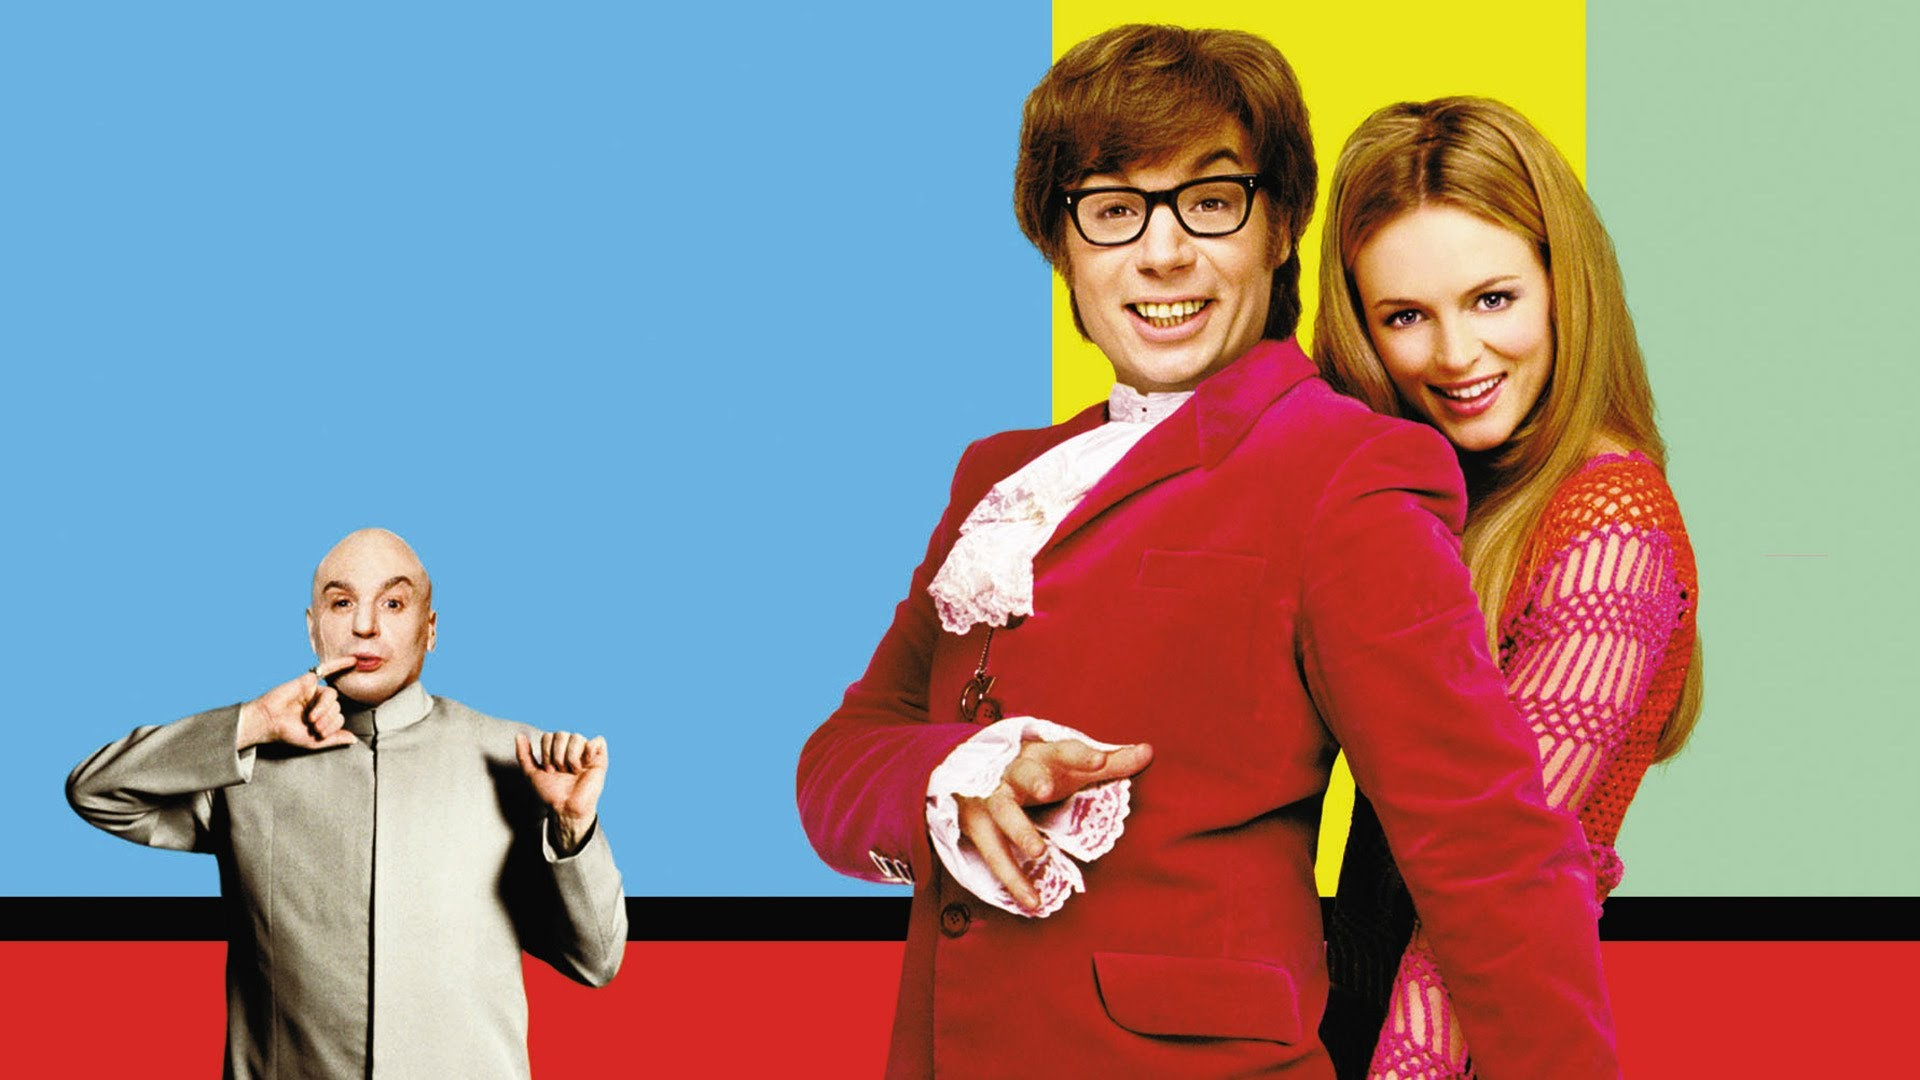 Austin Powers: The Spy Who Shagged Me Backgrounds, Compatible - PC, Mobile, Gadgets| 1920x1080 px